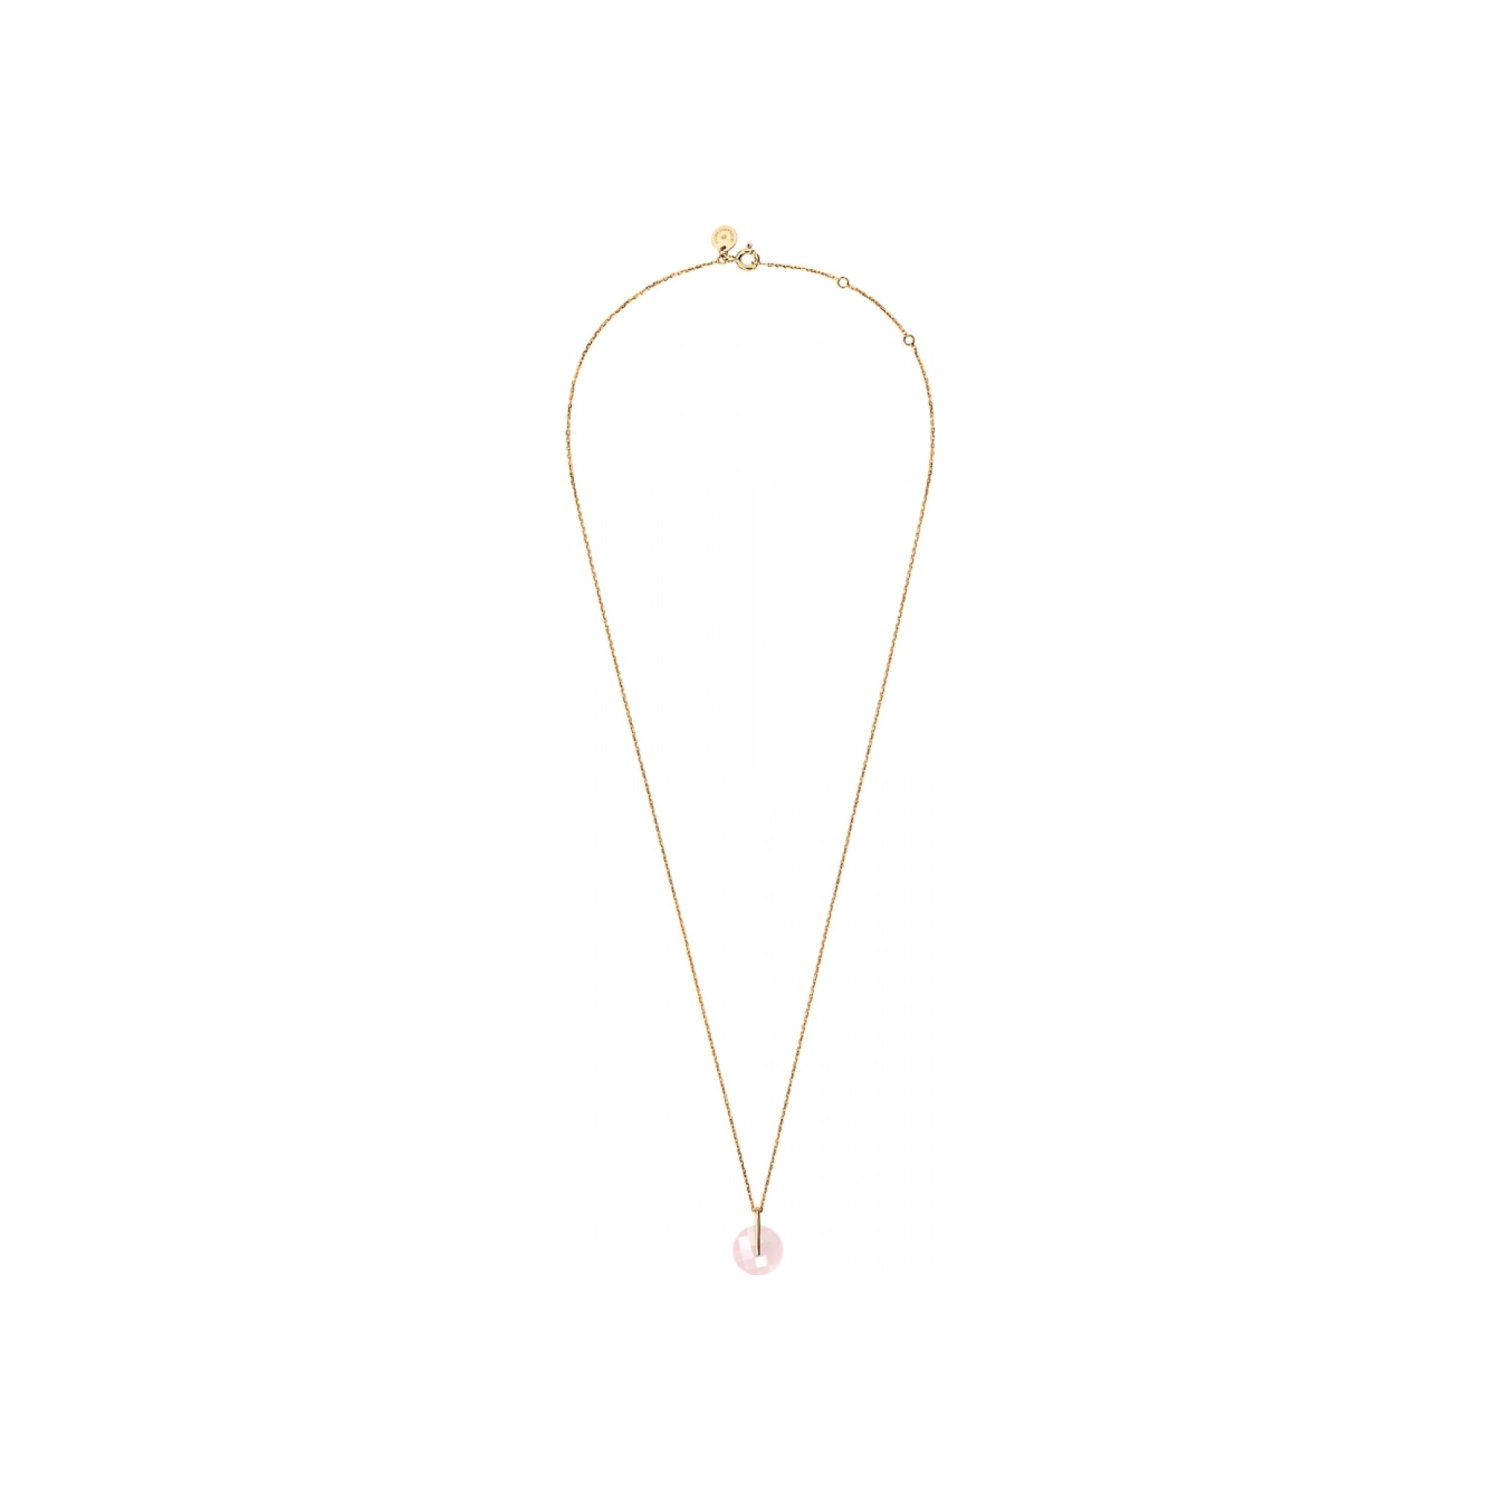 Collier Morganne Bello Honoré en or jaune et quartz rose